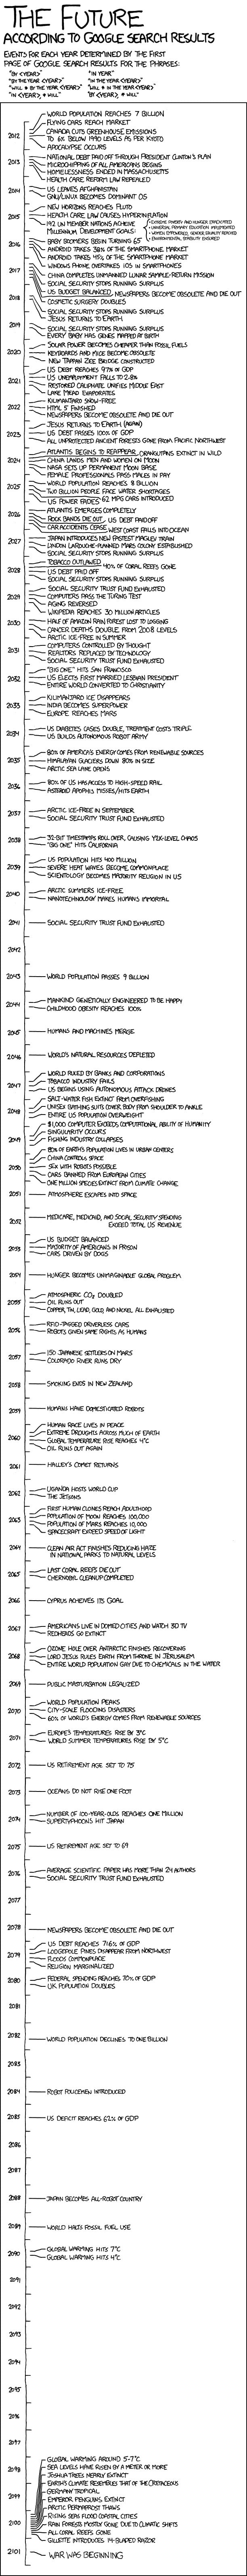 xkcd-the-future-according-to-google-search-results